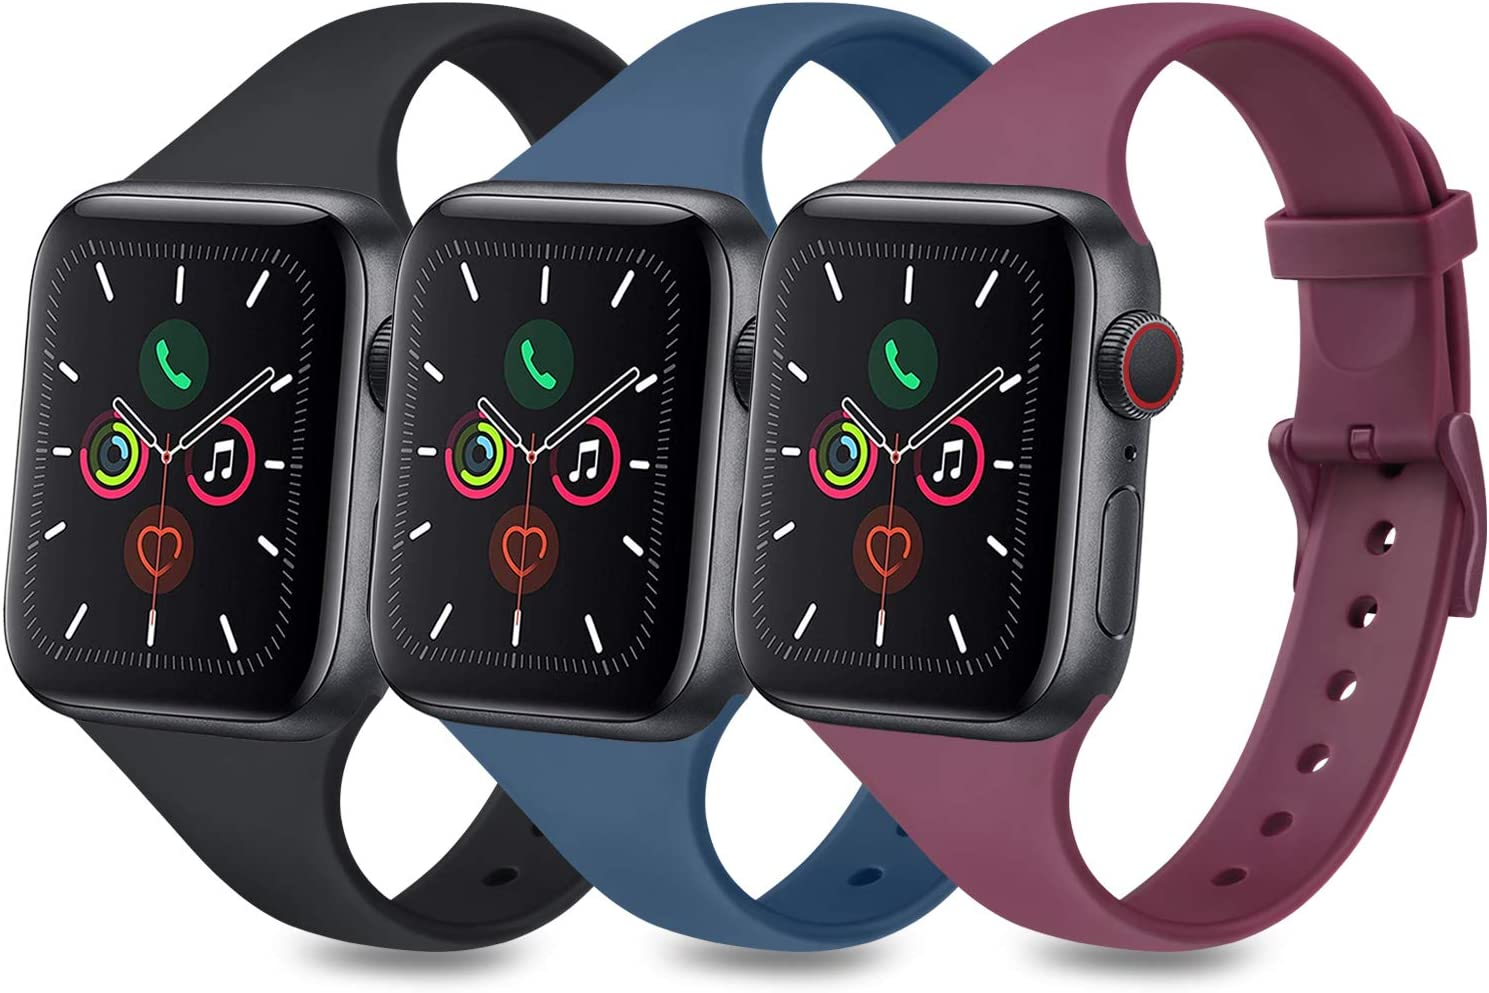 3 Pack Sport Bands Compatible with Apple Watch Band 38mm 40mm 42mm 44mm, Slim Thin Narrow Soft Silicone Replacement Strap for iWatch Series 6 5 4 3 2 1 SE (Black/Navy Blue/Wine Red, 38mm/40mm-M/L)